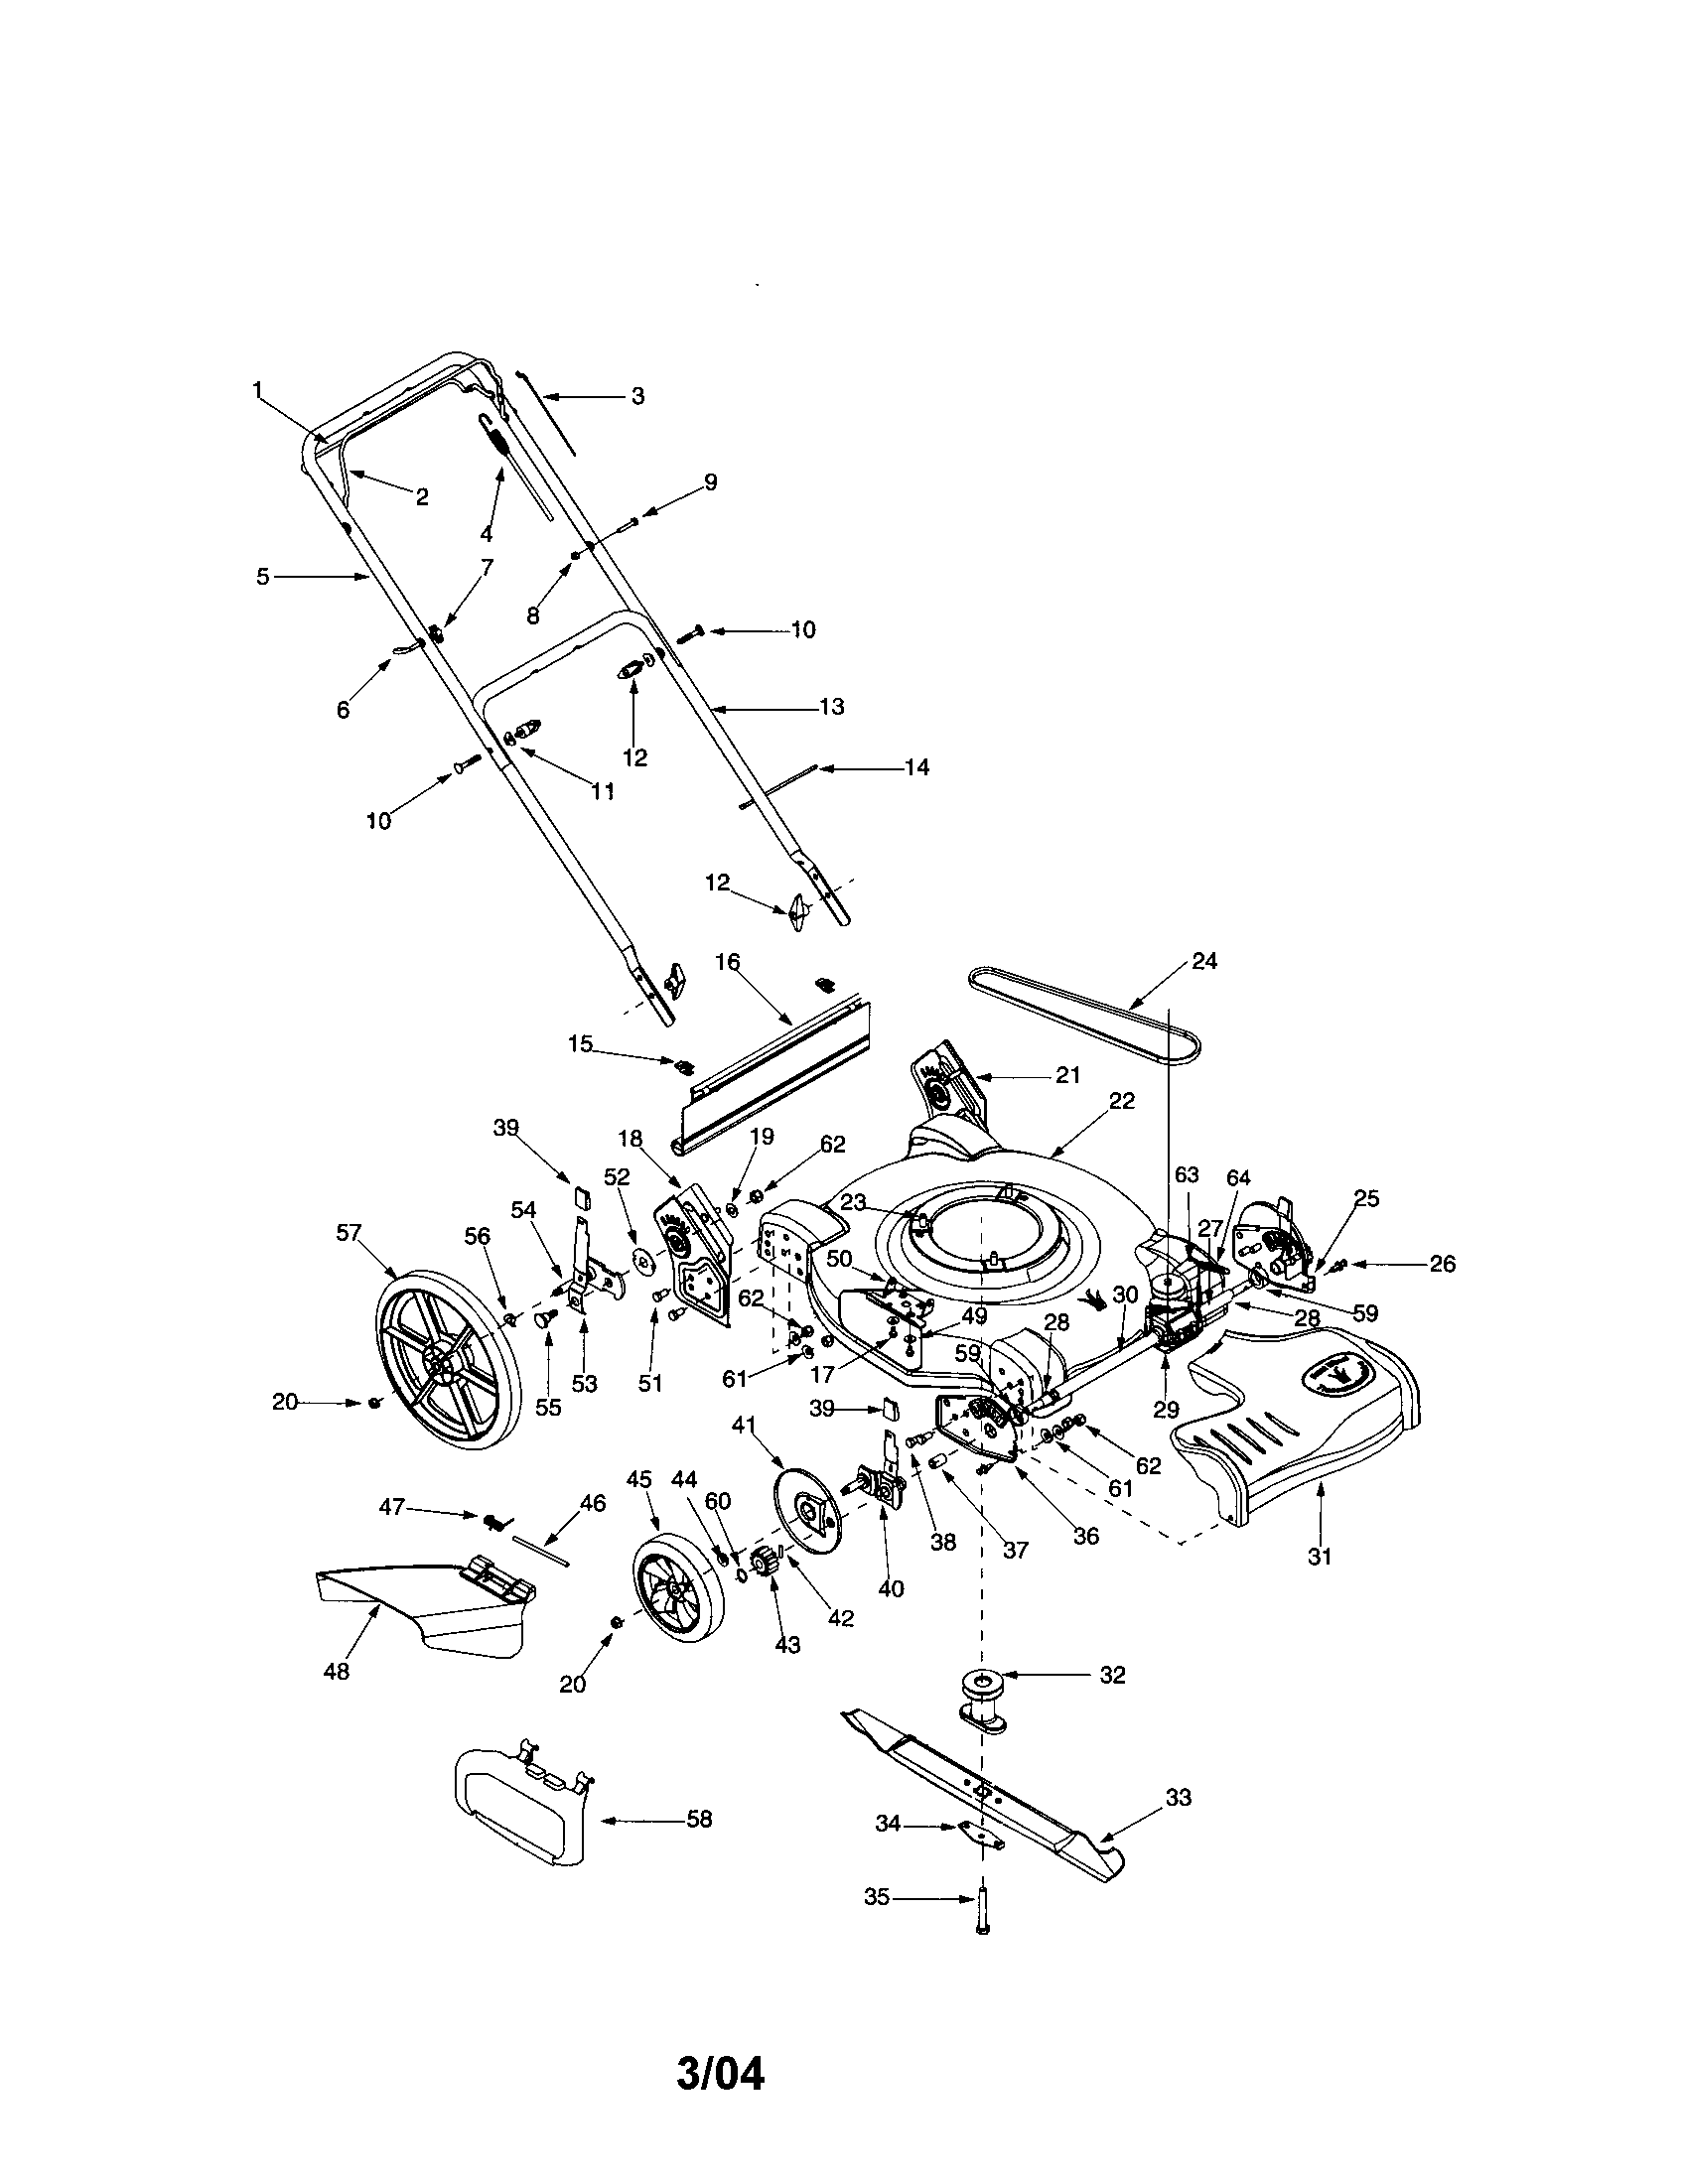 Kubota Tractor Wiring Diagrams. Kubota. Wiring Diagram Images